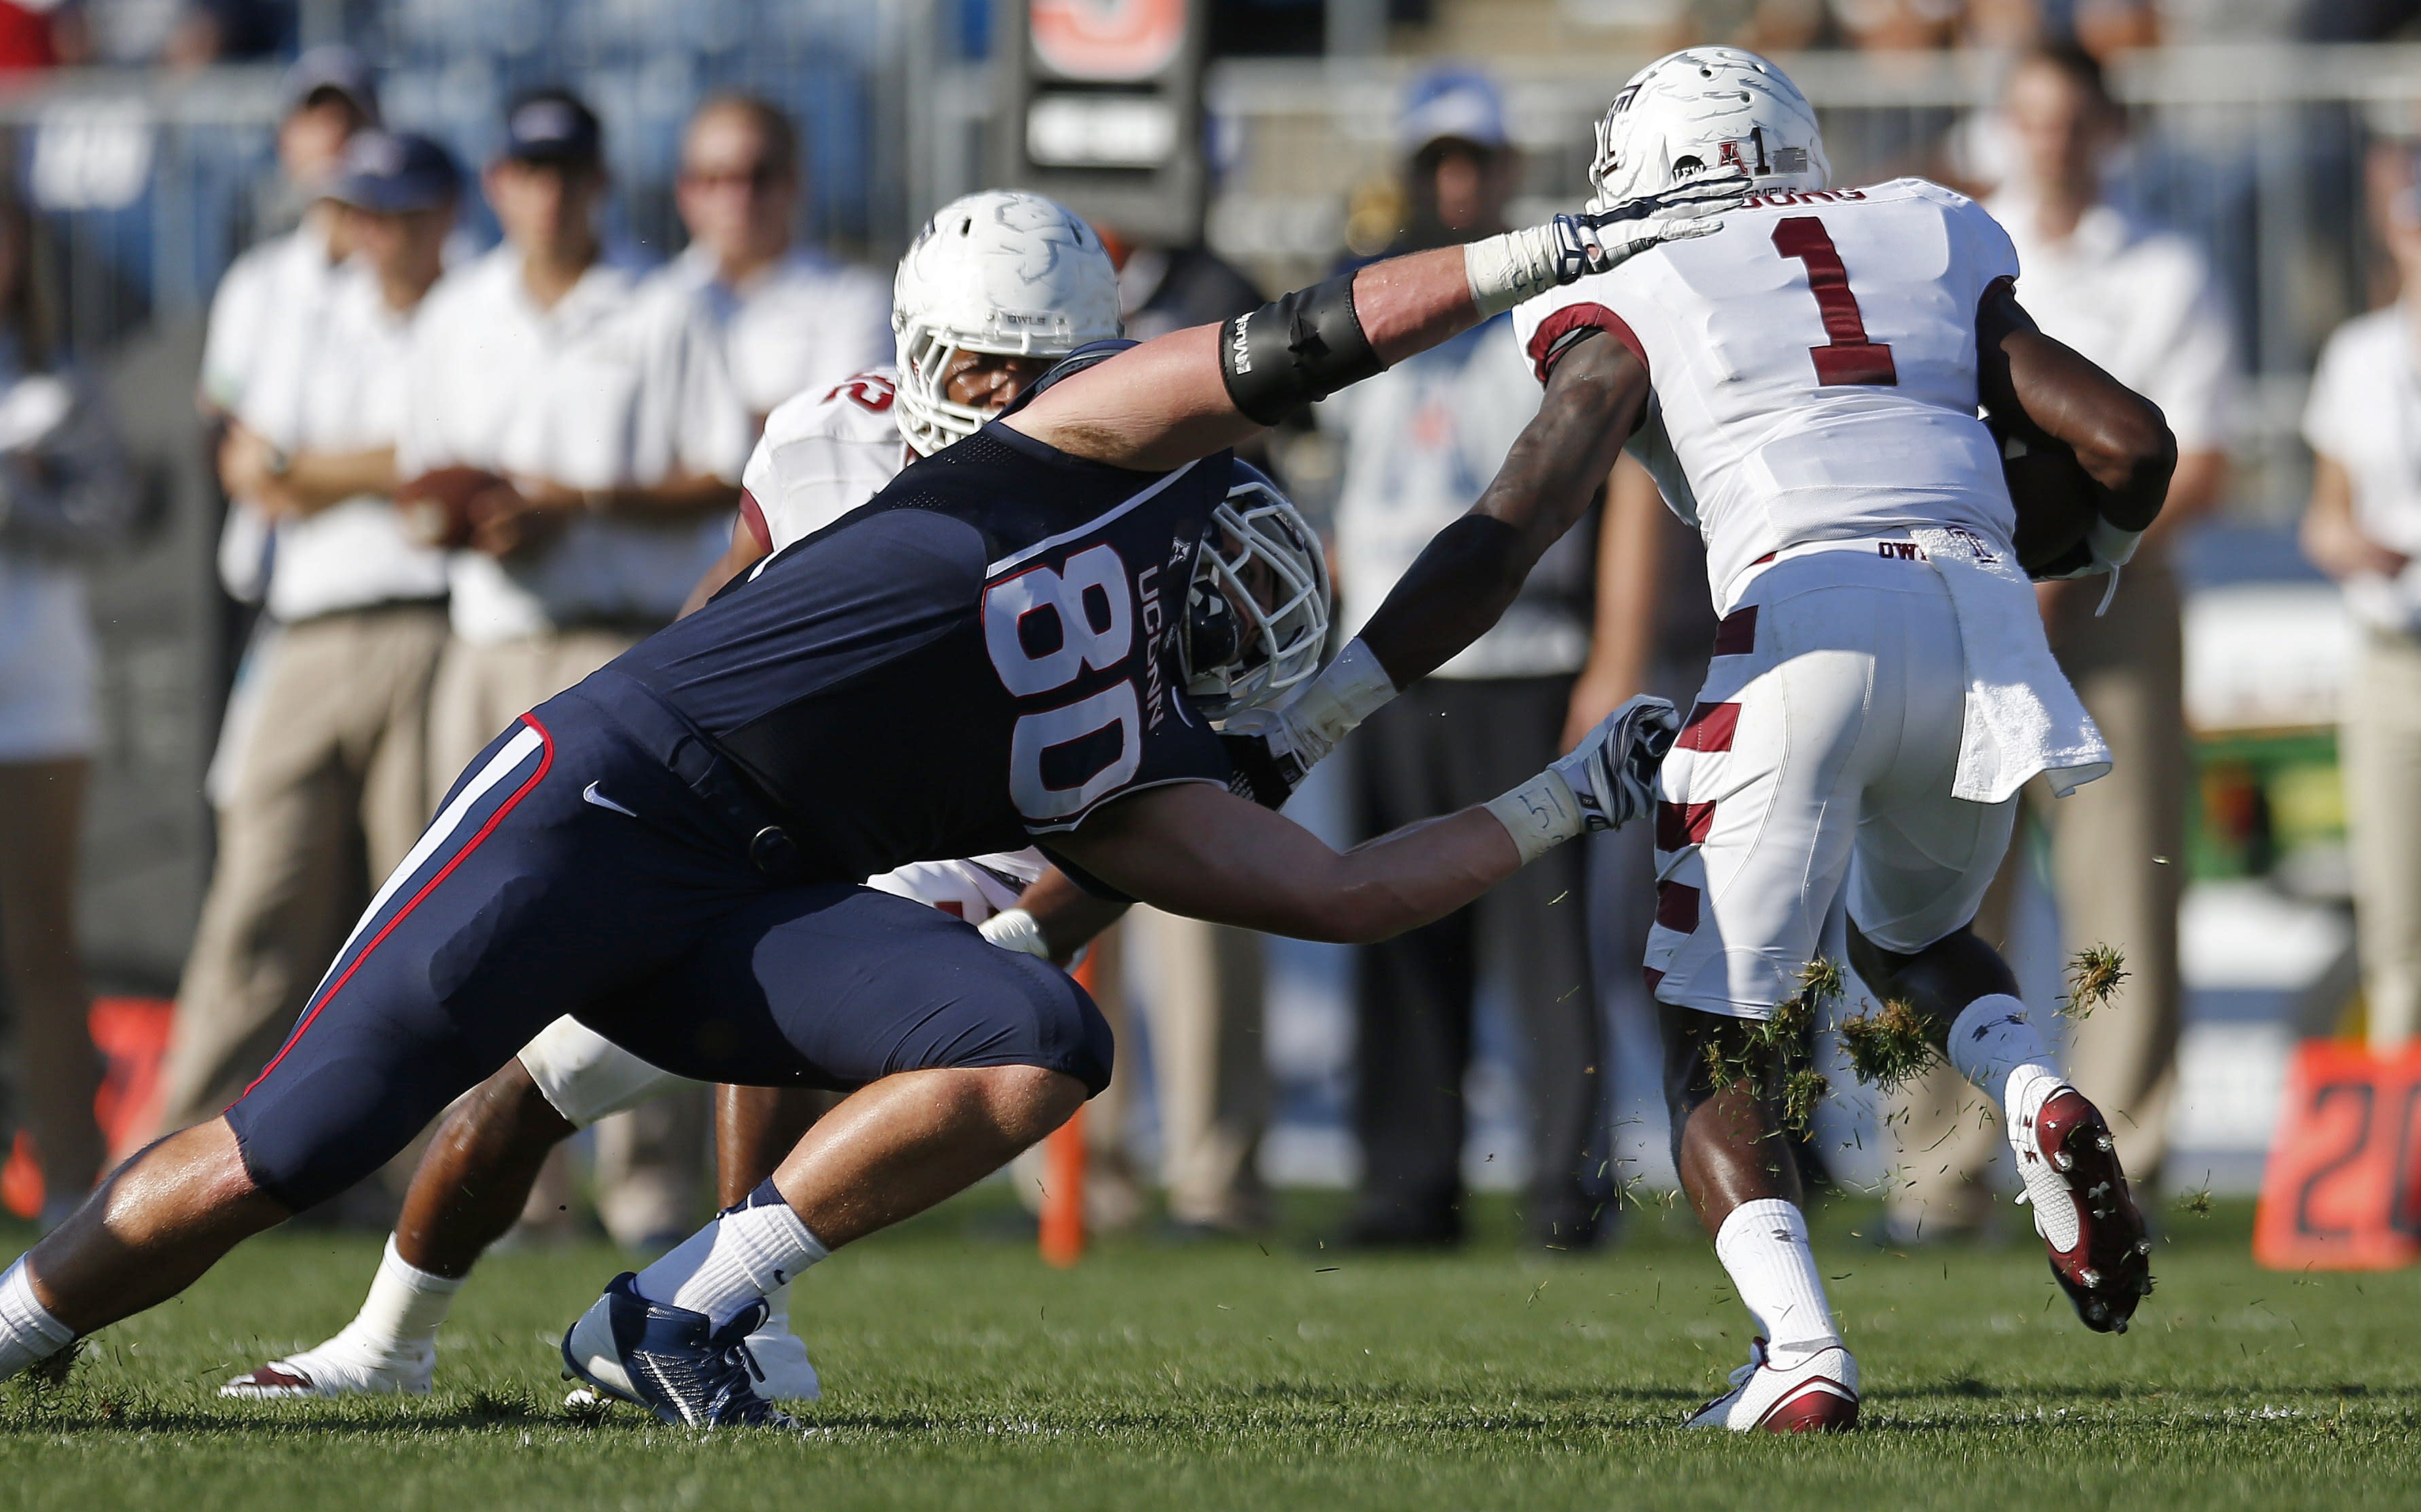 UConn's Tommy Myers makes juggling catch for touchdown (GIF)